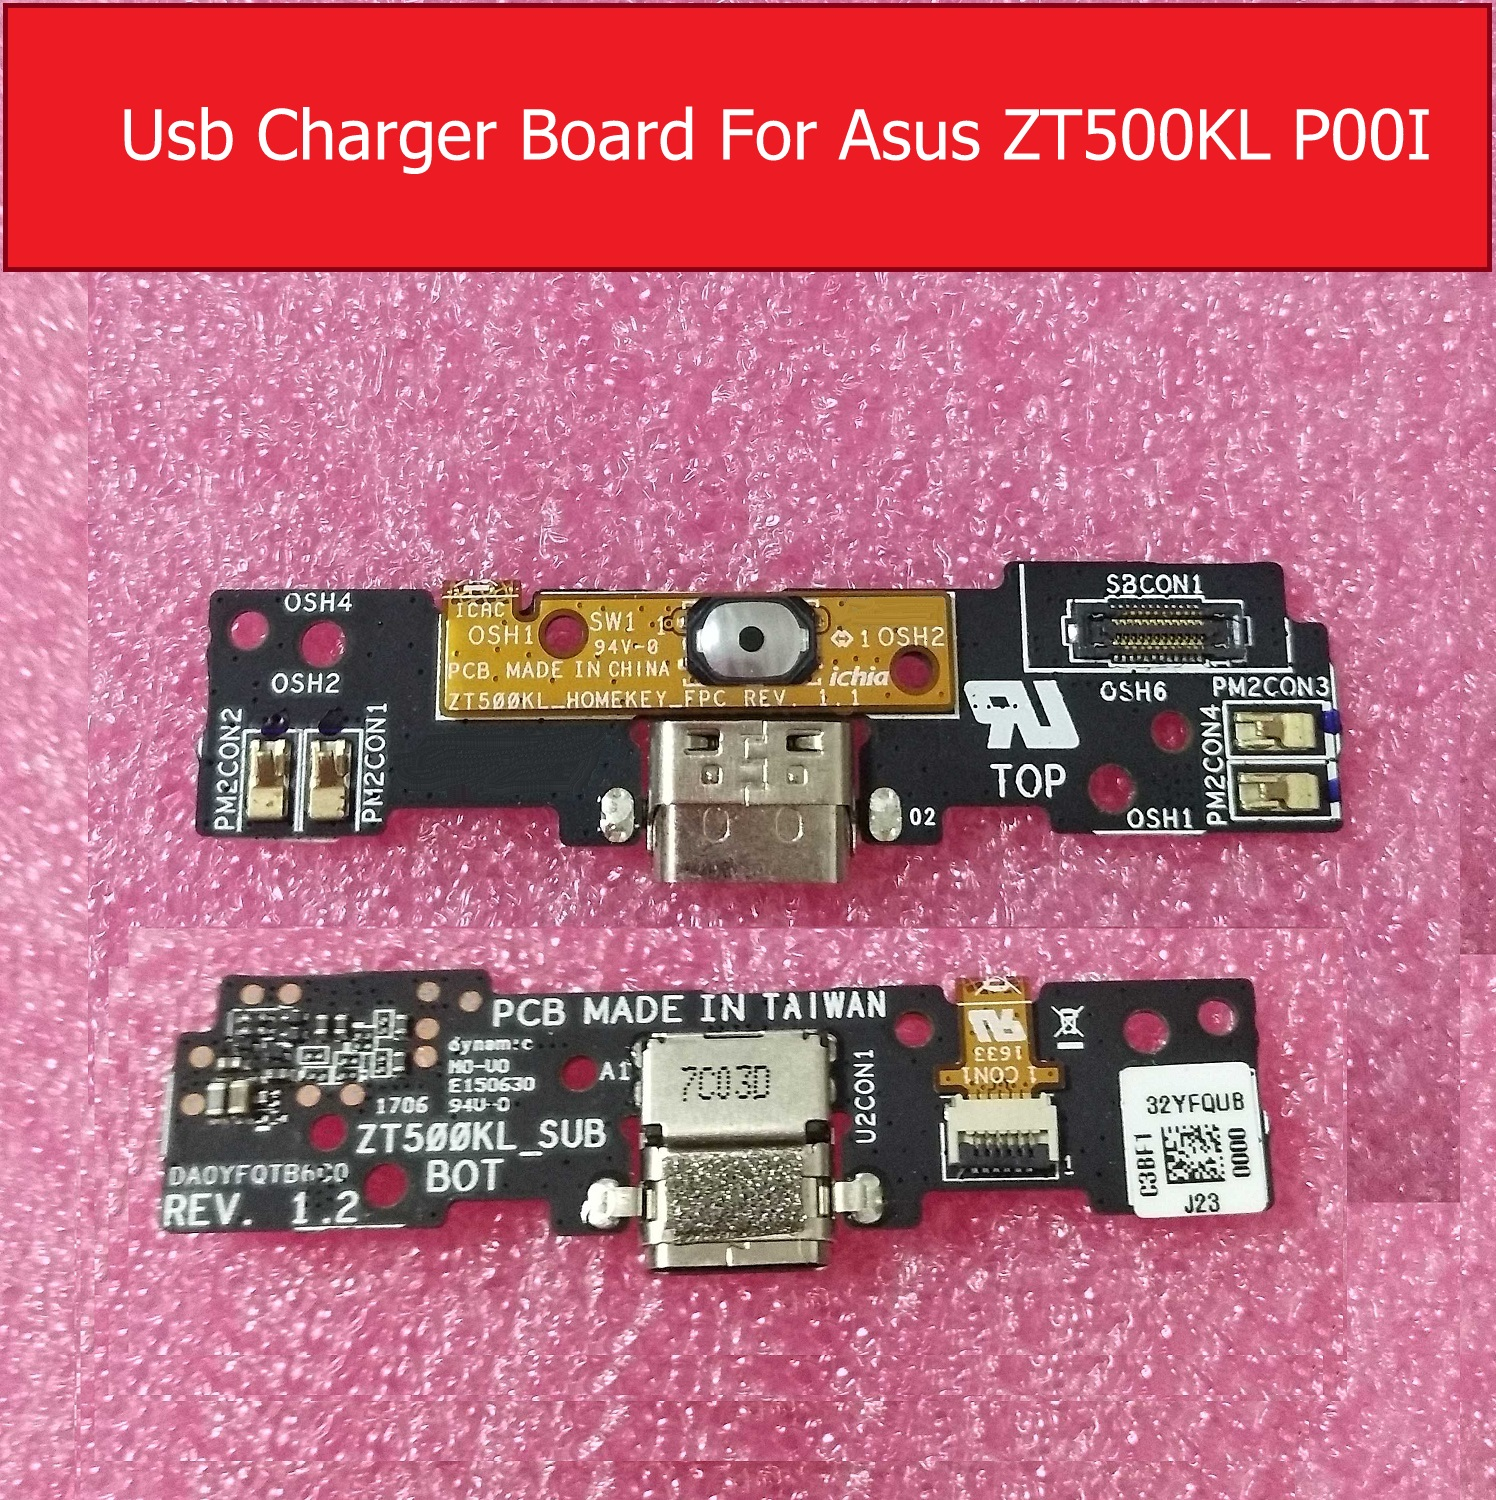 Genuine USB charger Port Board For ASUS Z500KL P001 ZT500KL Charging Jack Dock Board Replacement Repair PartsGenuine USB charger Port Board For ASUS Z500KL P001 ZT500KL Charging Jack Dock Board Replacement Repair Parts